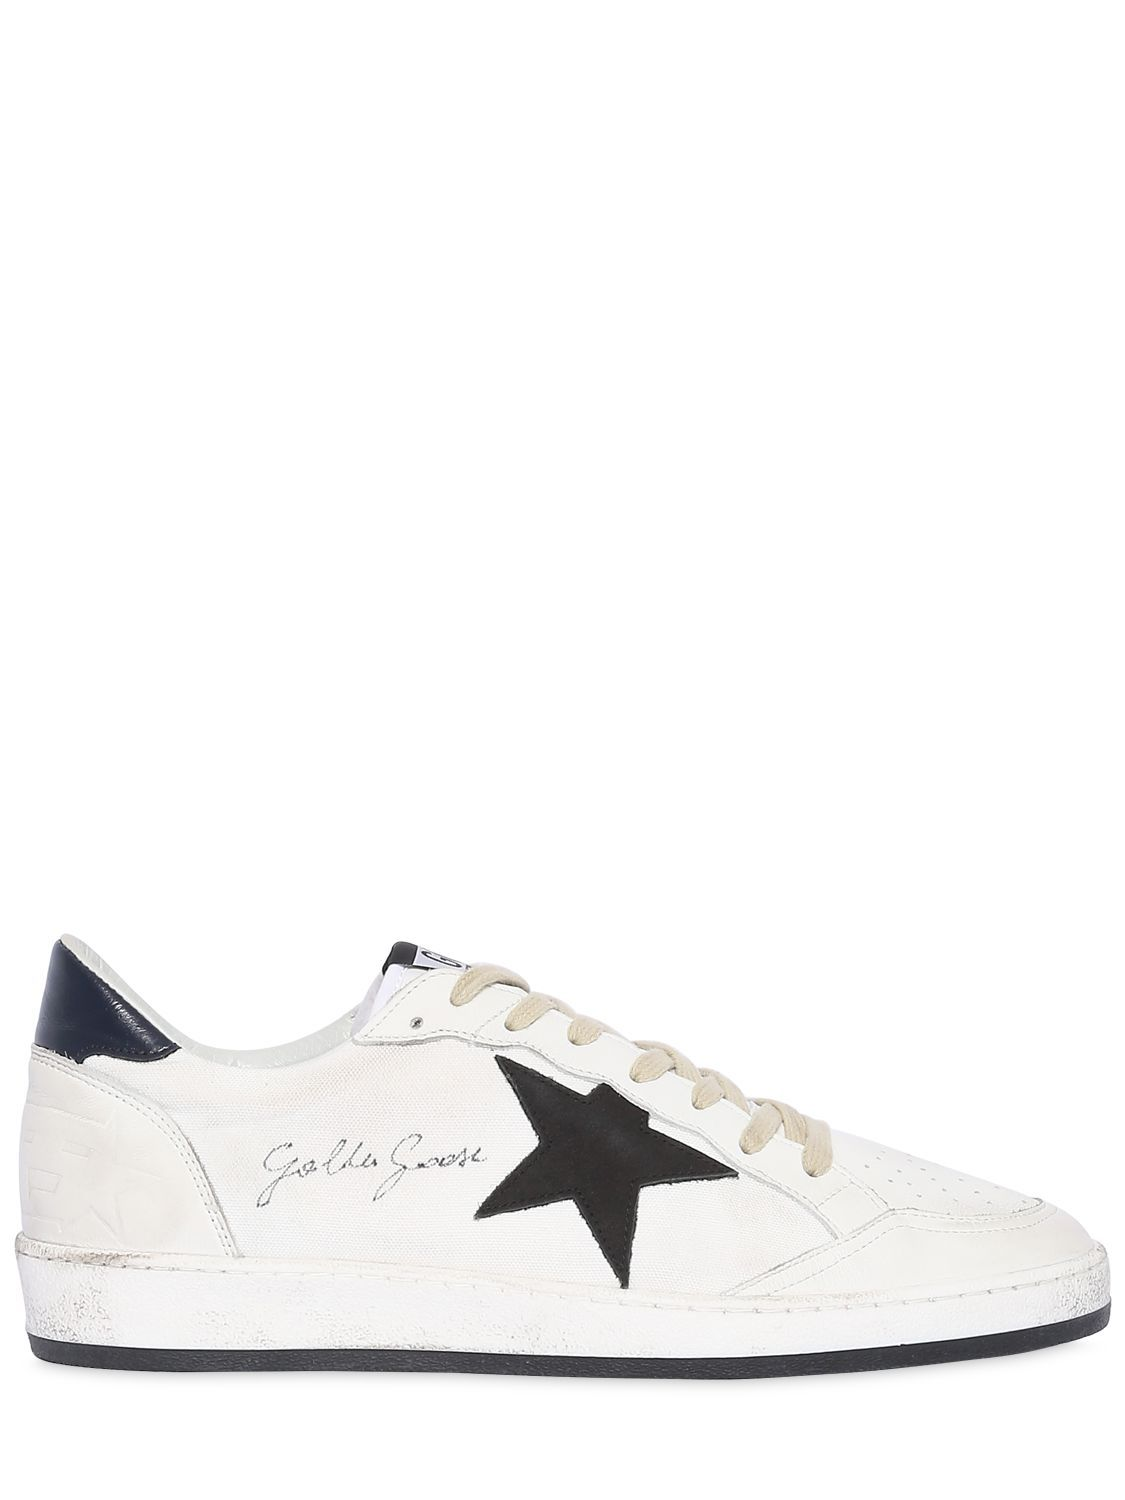 7f44f469bb7f GOLDEN GOOSE BALL STAR LEATHER   CANVAS SNEAKERS.  goldengoose  shoes